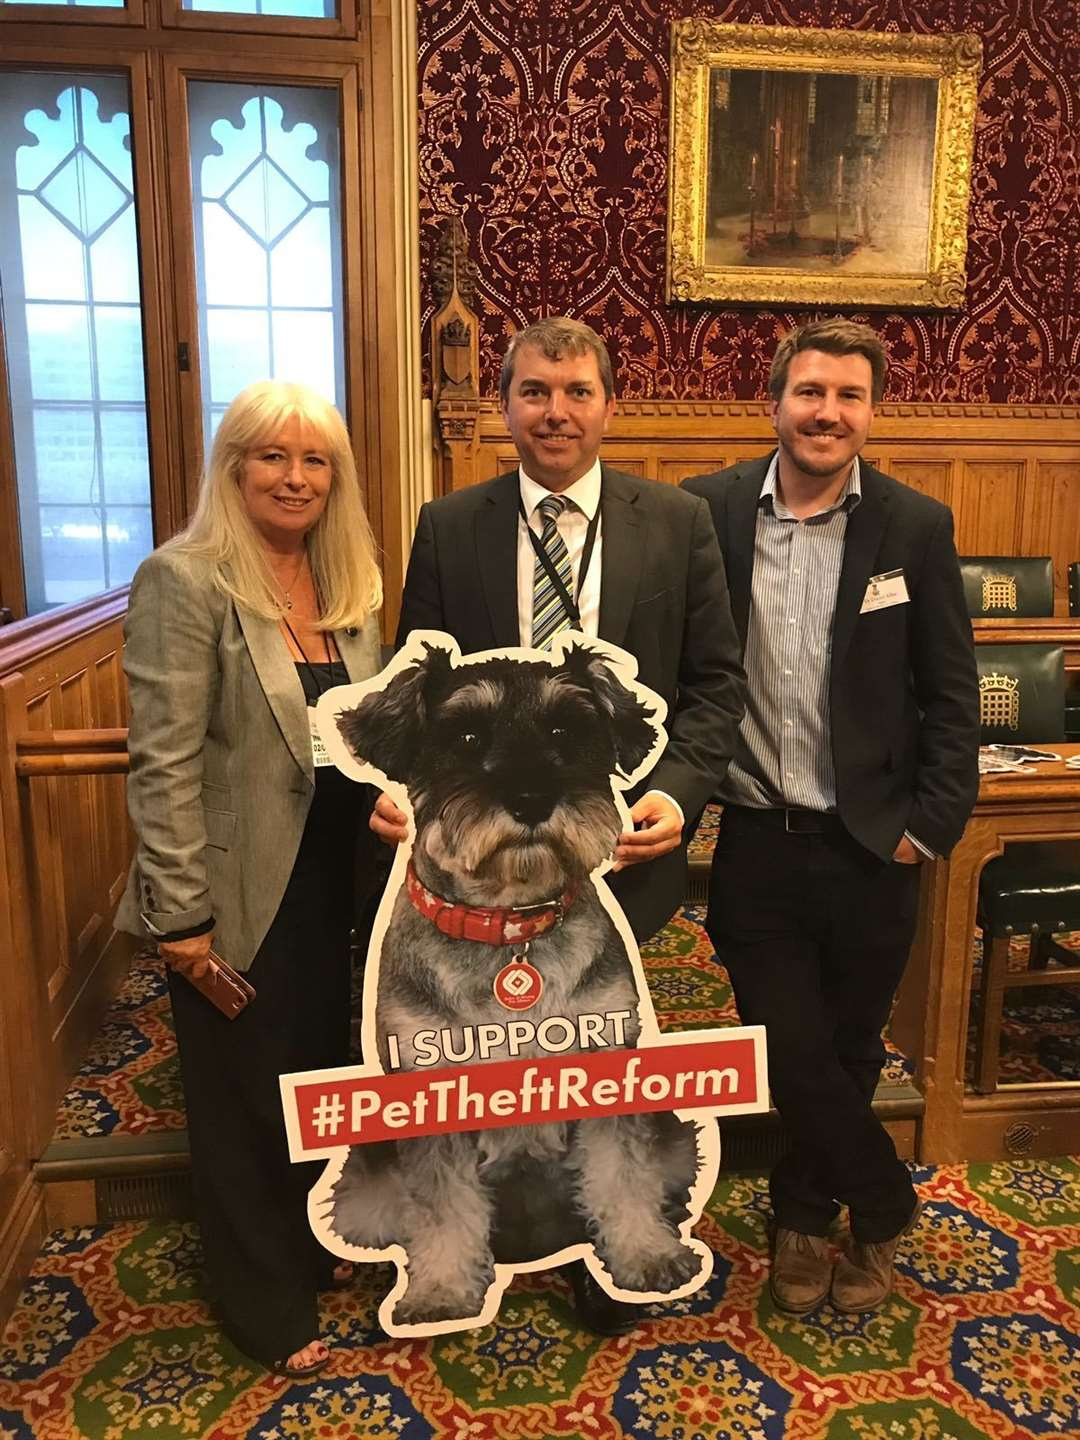 From left: Stolen and Missing Pets Alliance Chief Debbie Matthews, Dartford MP Gareth Johnson and SAMPRA Patron and pet law reform researcher Dr Daniel Allen